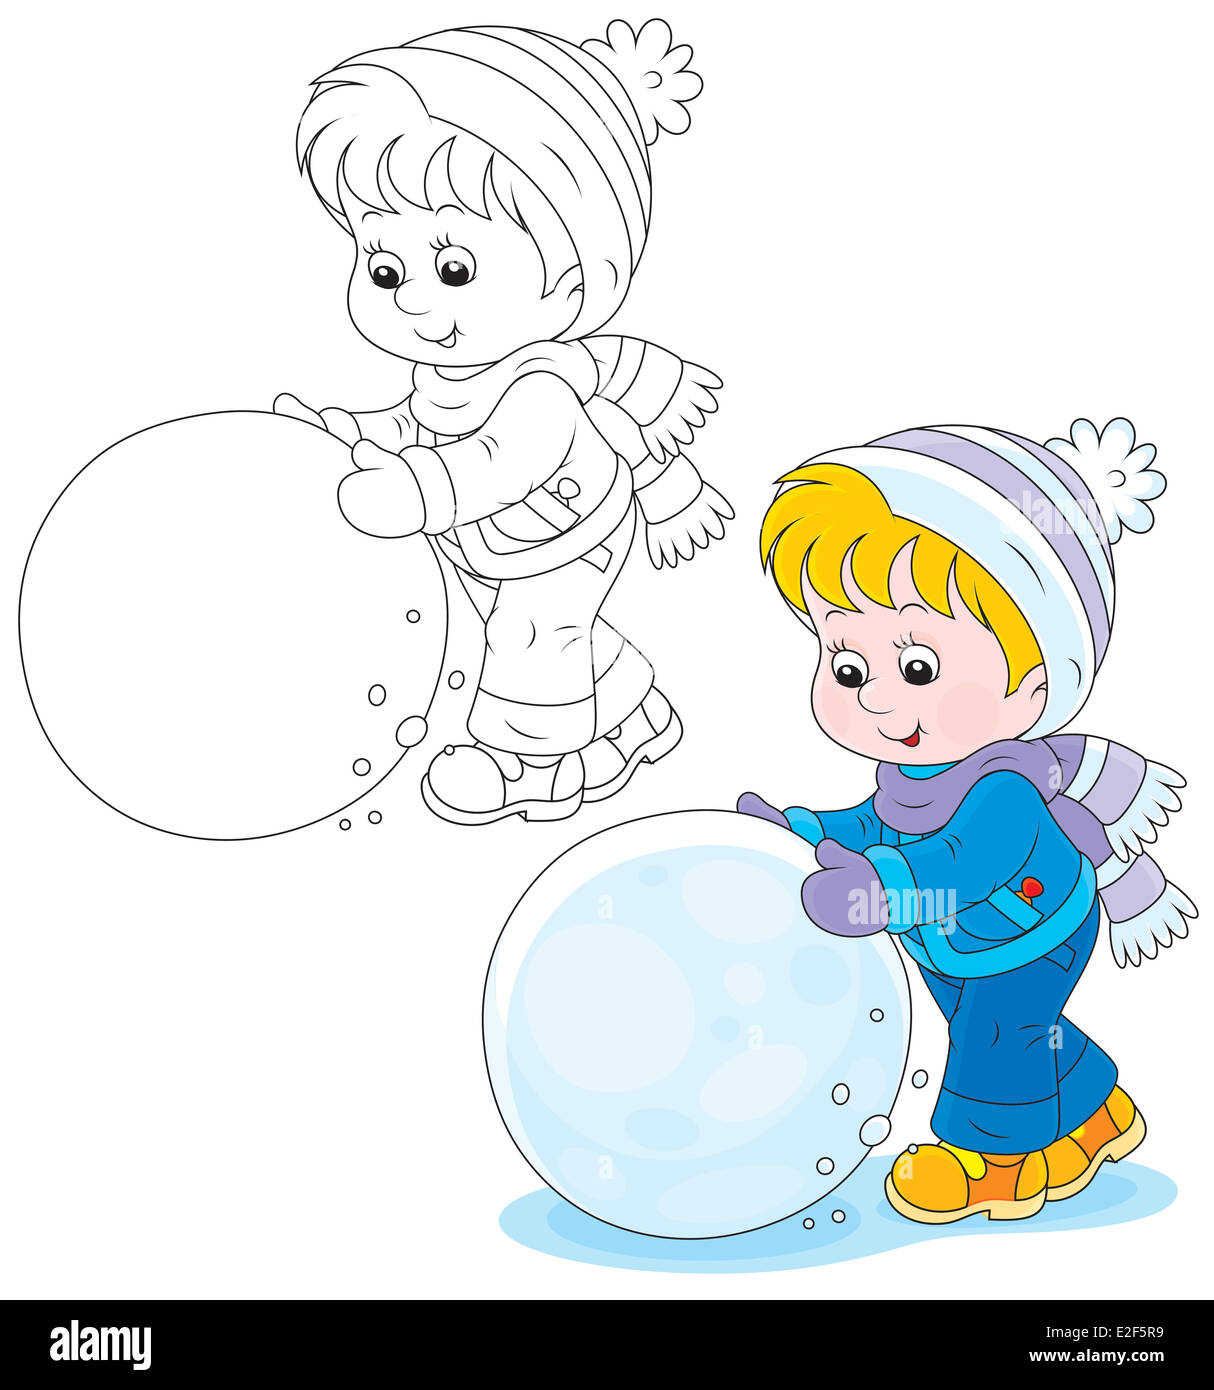 Child with a snowball - Stock Image